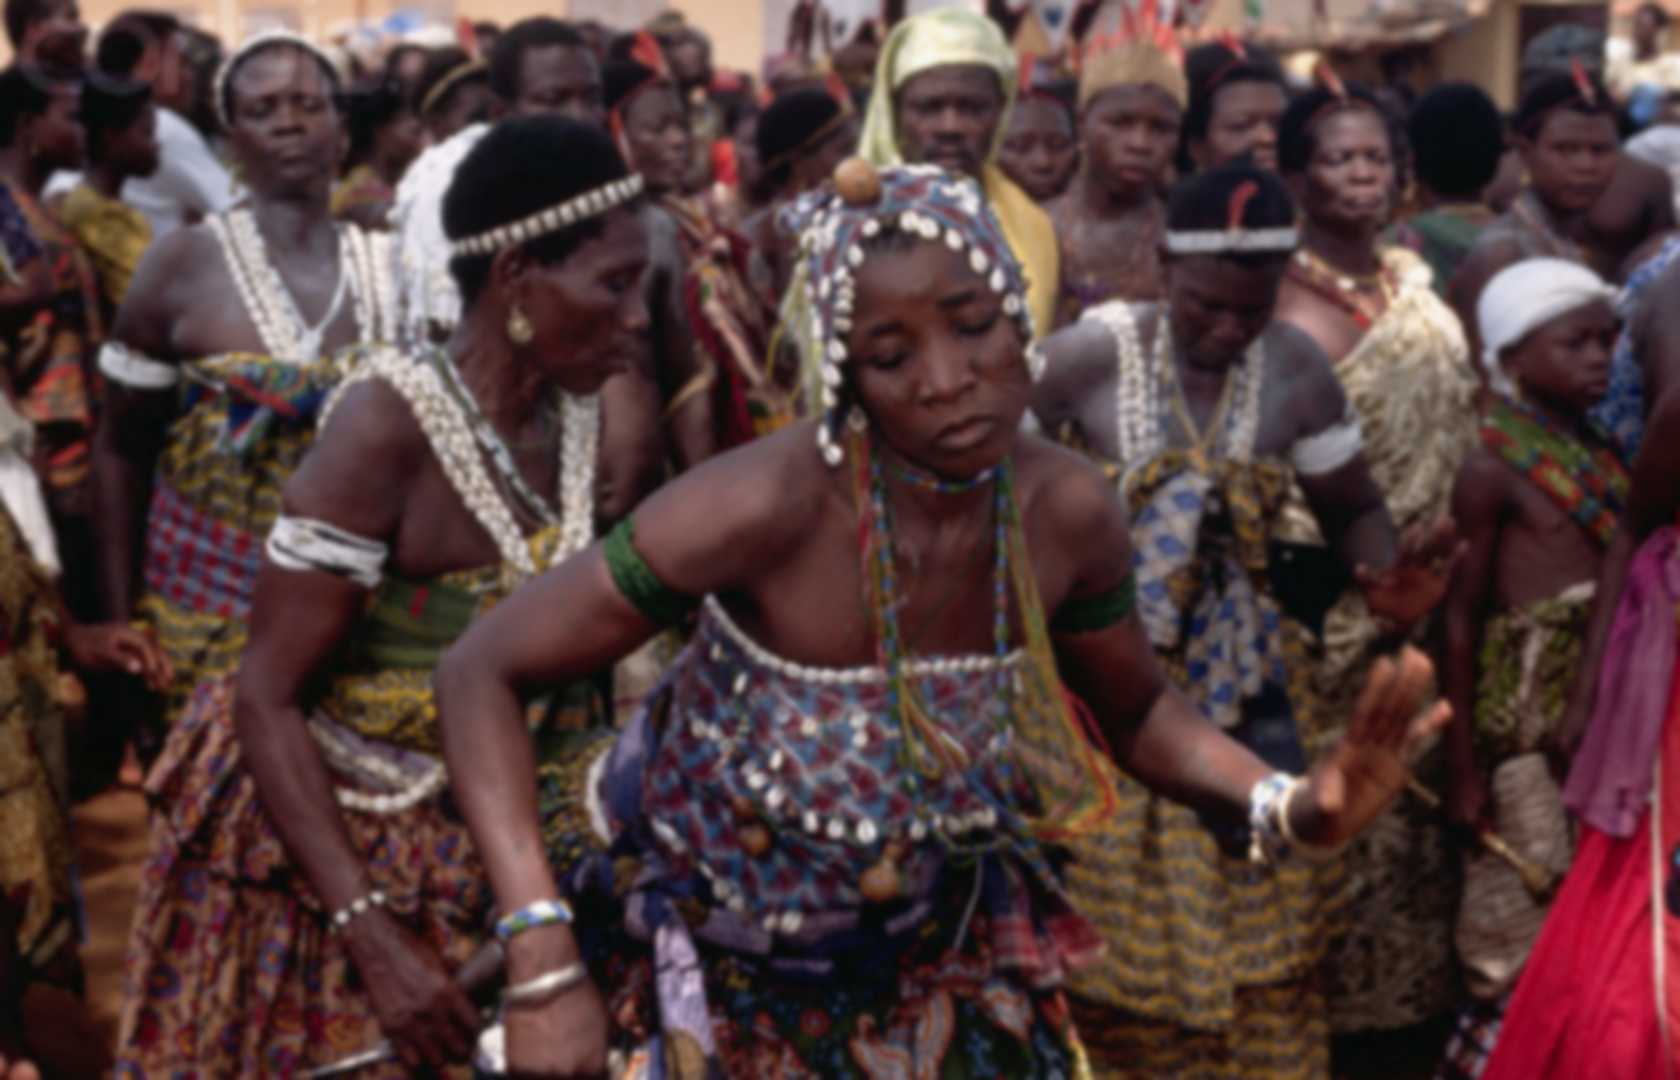 a history of voodoo African voodoo - voodoo originated in the african kingdoms of fon and kongo as many as 6,000 years ago learn about the history of african voodoo.